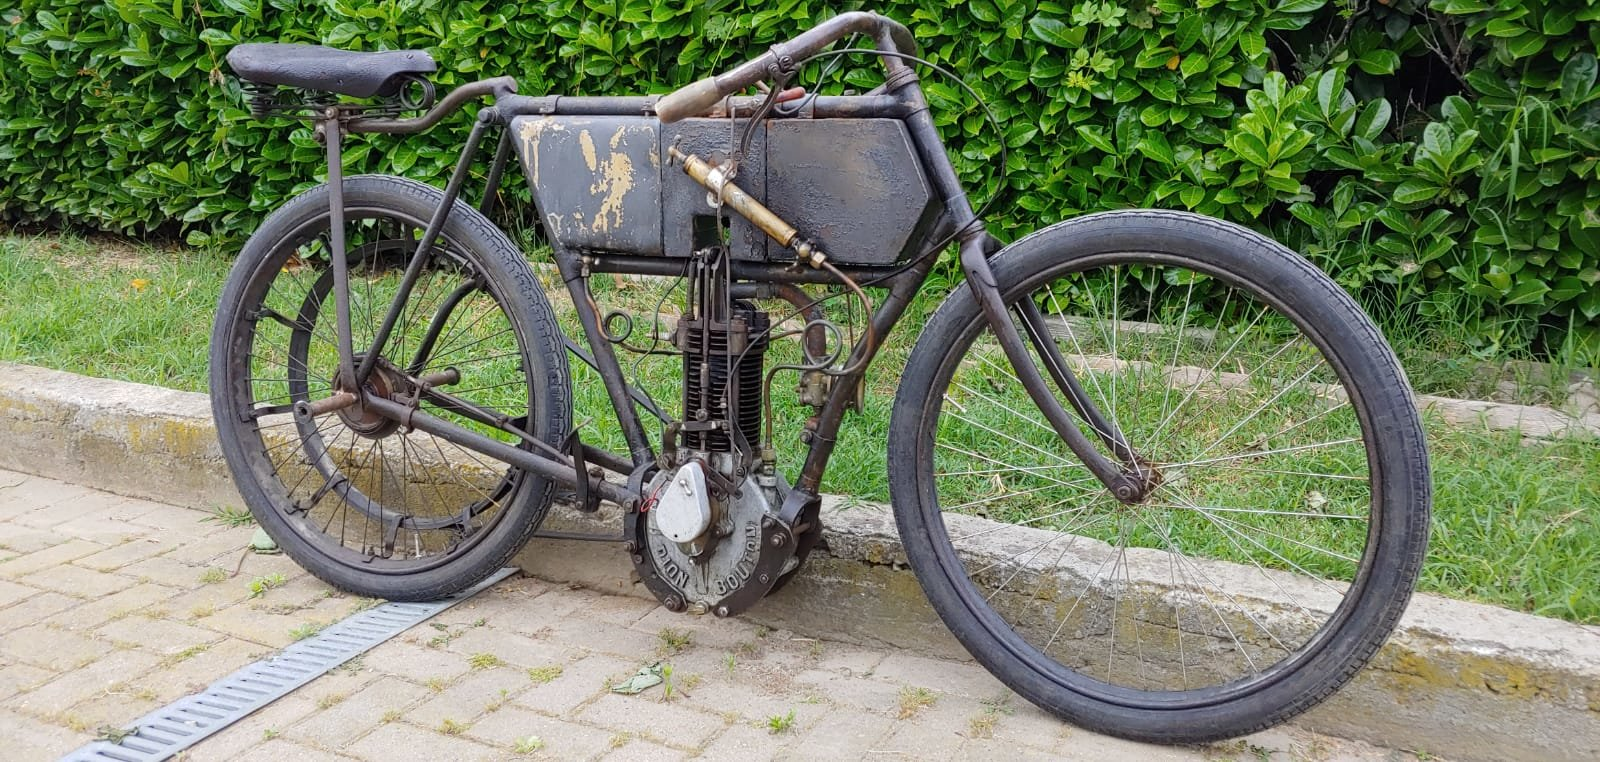 1901 Dedion Bouton For Sale (picture 2 of 5)